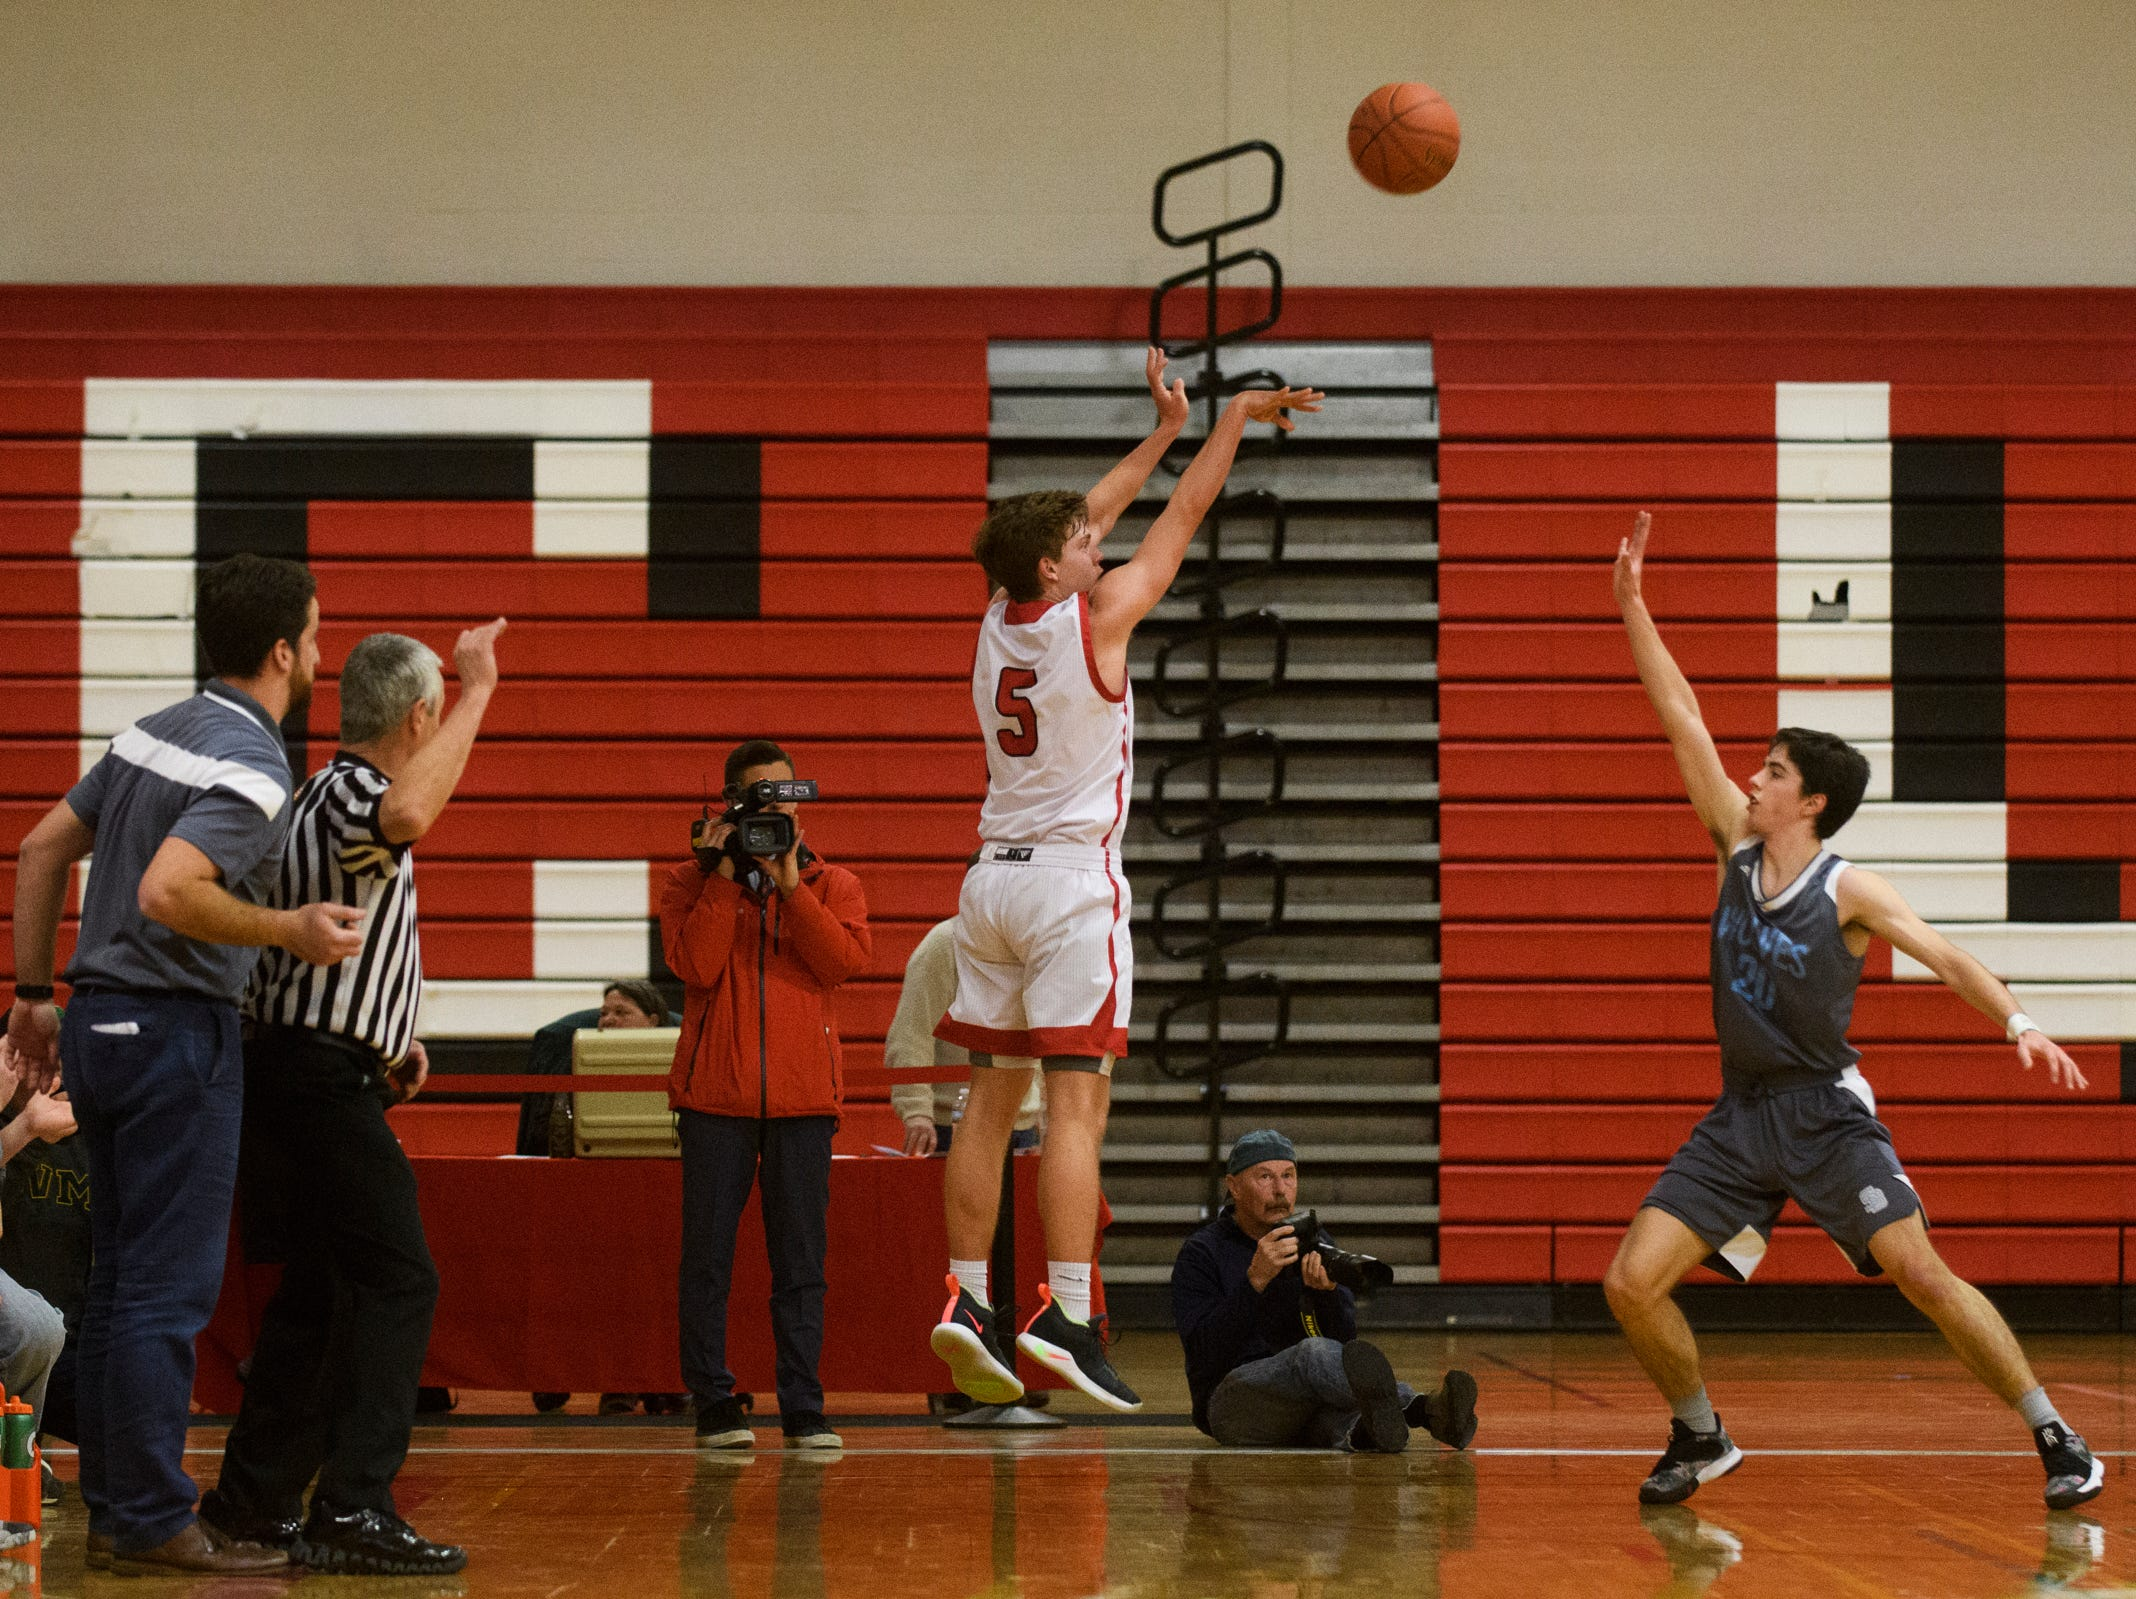 CVU's Ethan Harvey (5) shoots a three pointer during the boys basketball game between he South Burlington Wolves and the Champlain Valley Union Redhawks at CVU High School on Tuesday night March 5, 2019 in Hinesburg, Vermont.